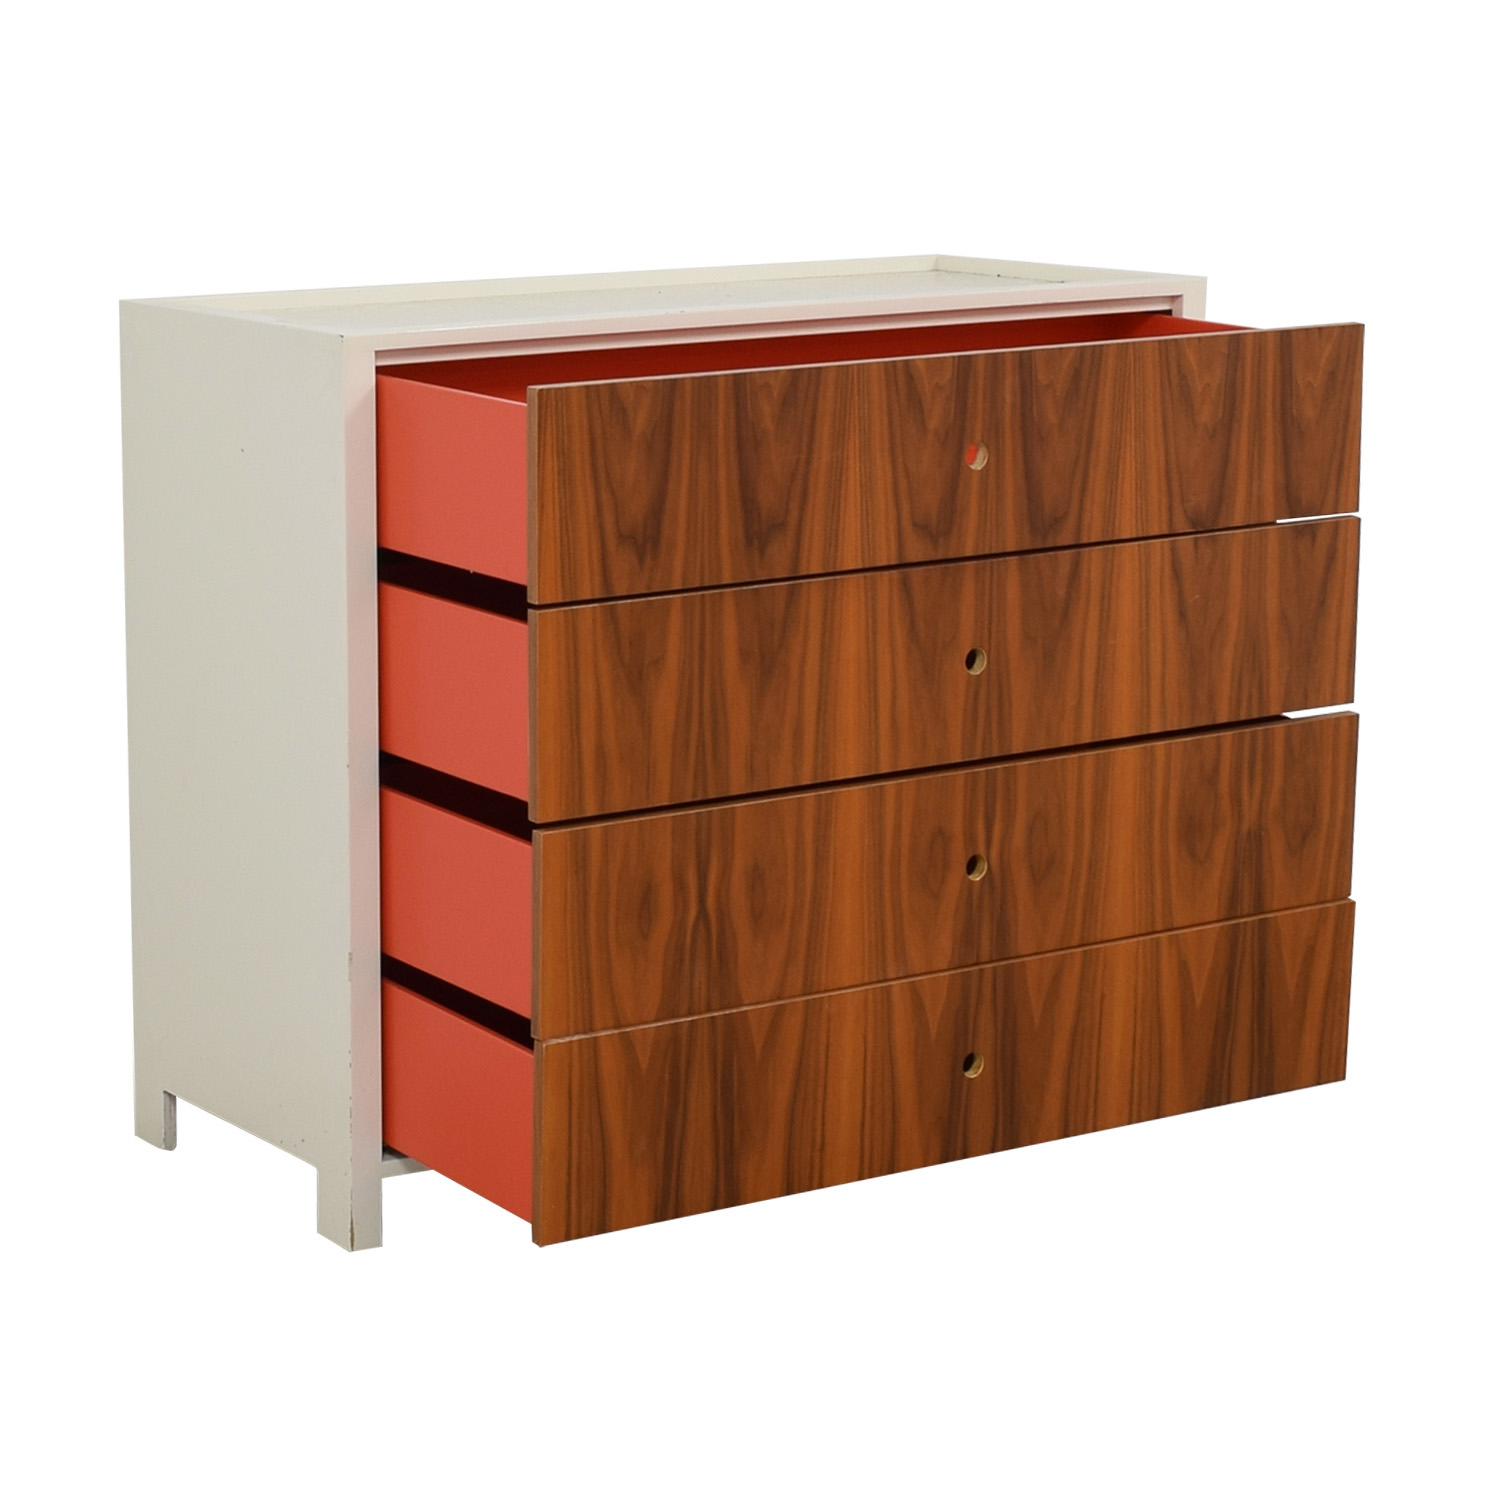 Superb 77 Off Ducduc Ducduc Parker White And Wood Dresser Changing Table Storage Download Free Architecture Designs Intelgarnamadebymaigaardcom